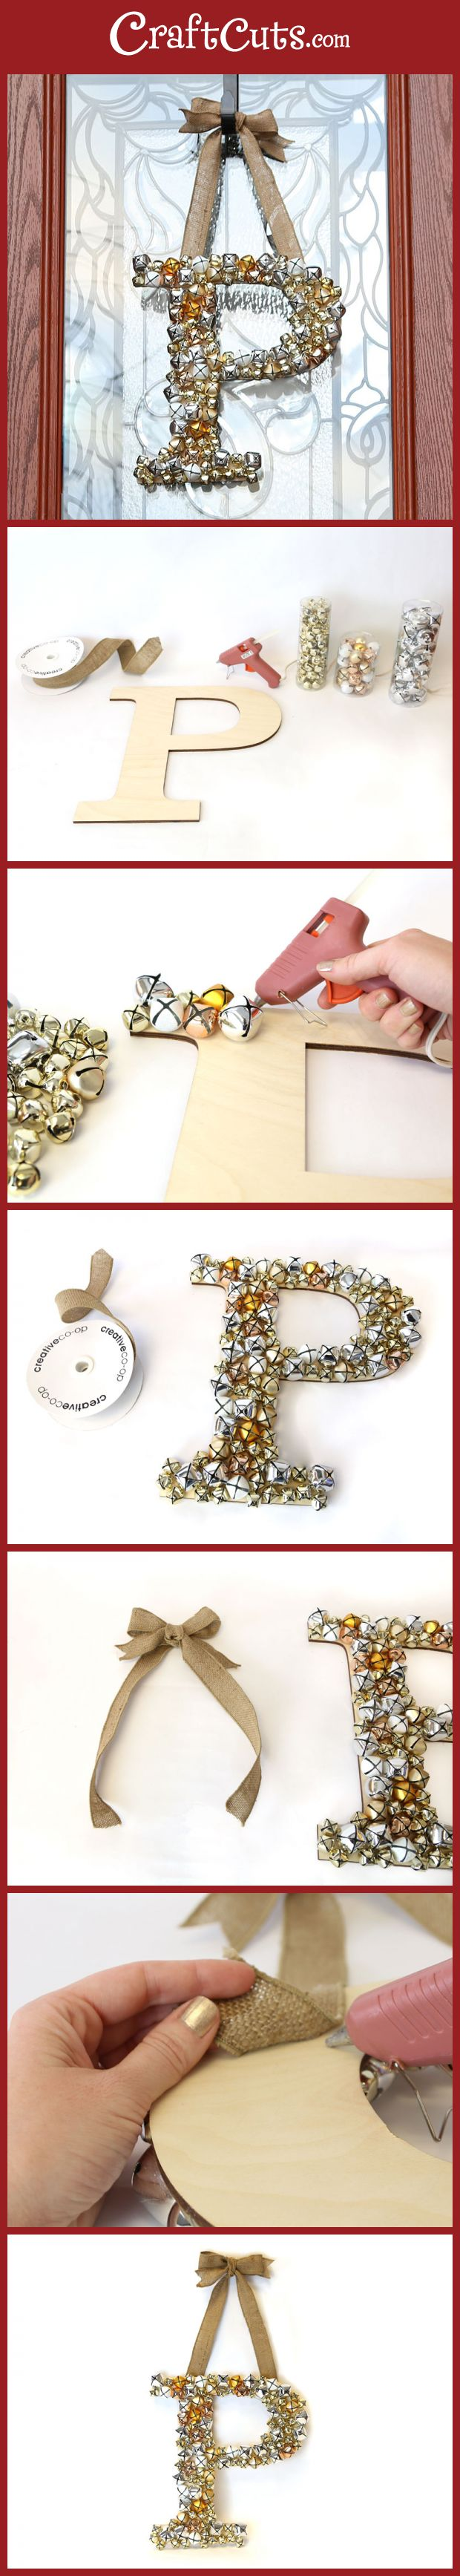 How+to+Create+a+Jingle+Bell+Monogram+Wreath+|+CraftCuts.com